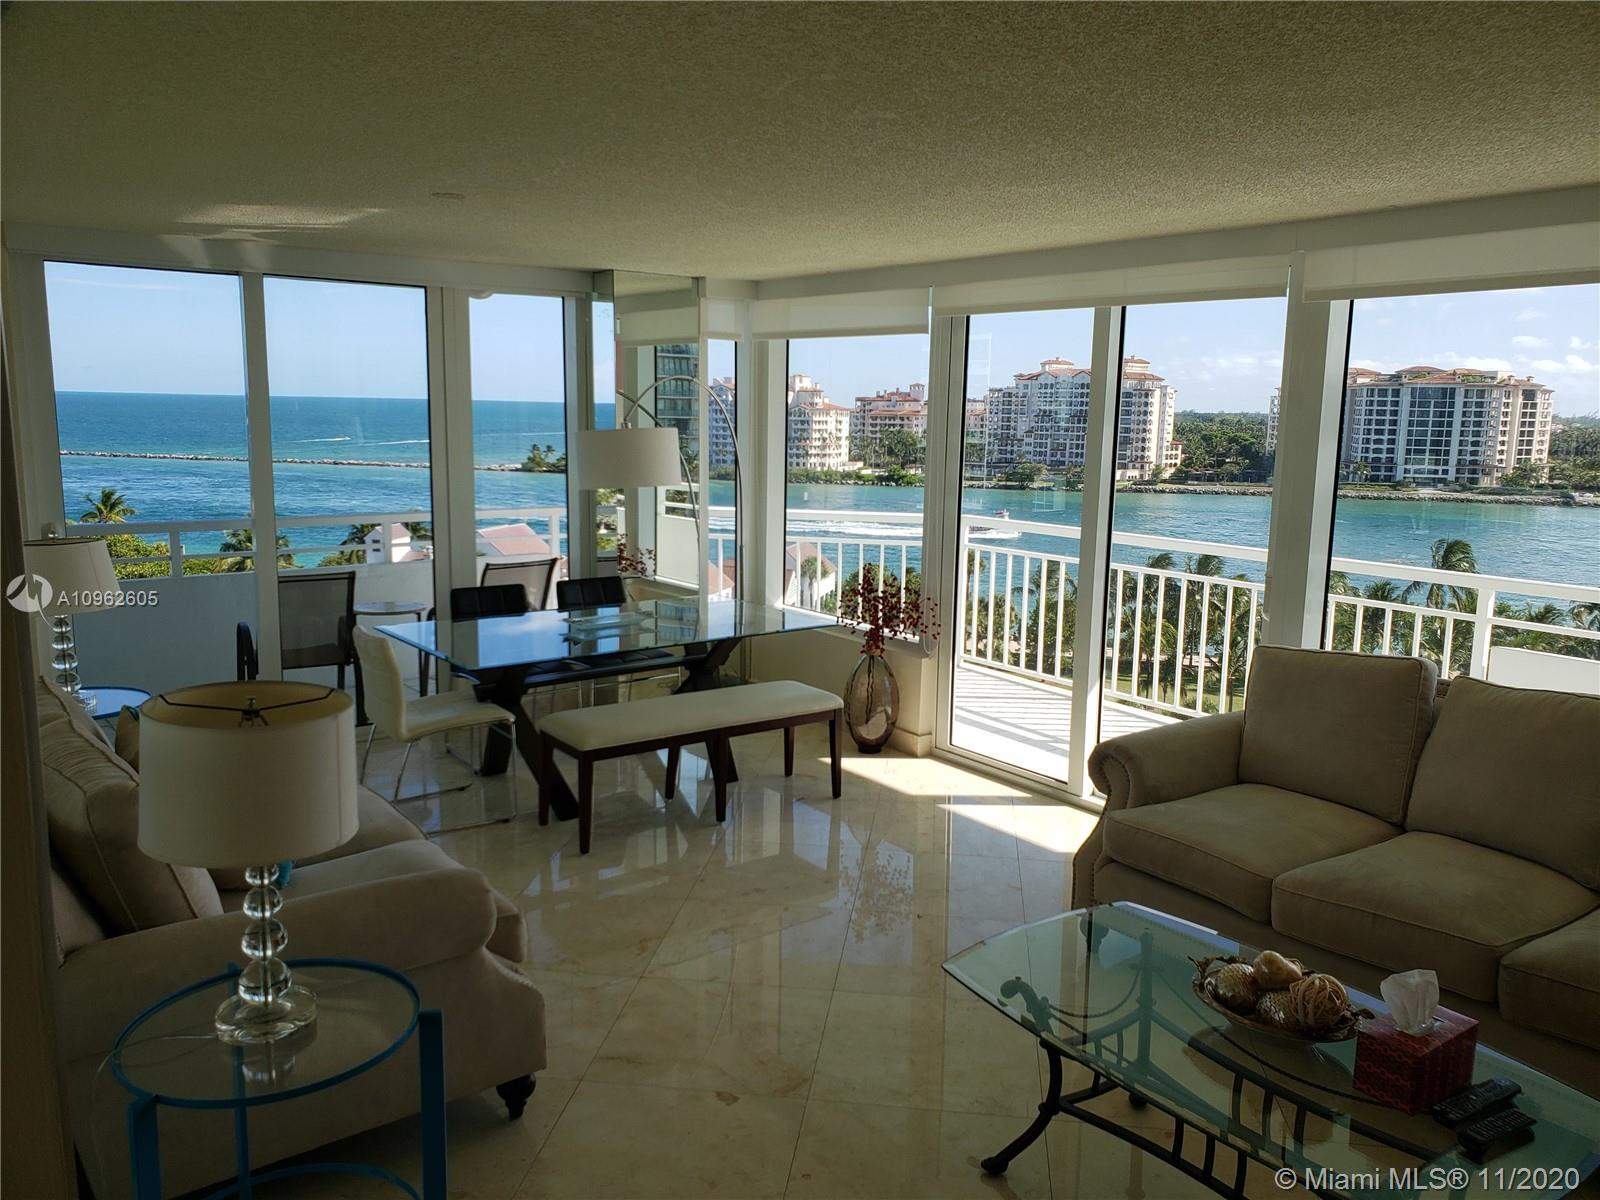 Best Location in South Beach and Best Location in Building S.W. Corner. Magnificent Views of City, OCEAN and Fisher Island.  2 Bedrooms 2 baths. 1,250 SF Living Space. 259 wraparound Terrace, Total 1,509 SF. Hurricane Windows.